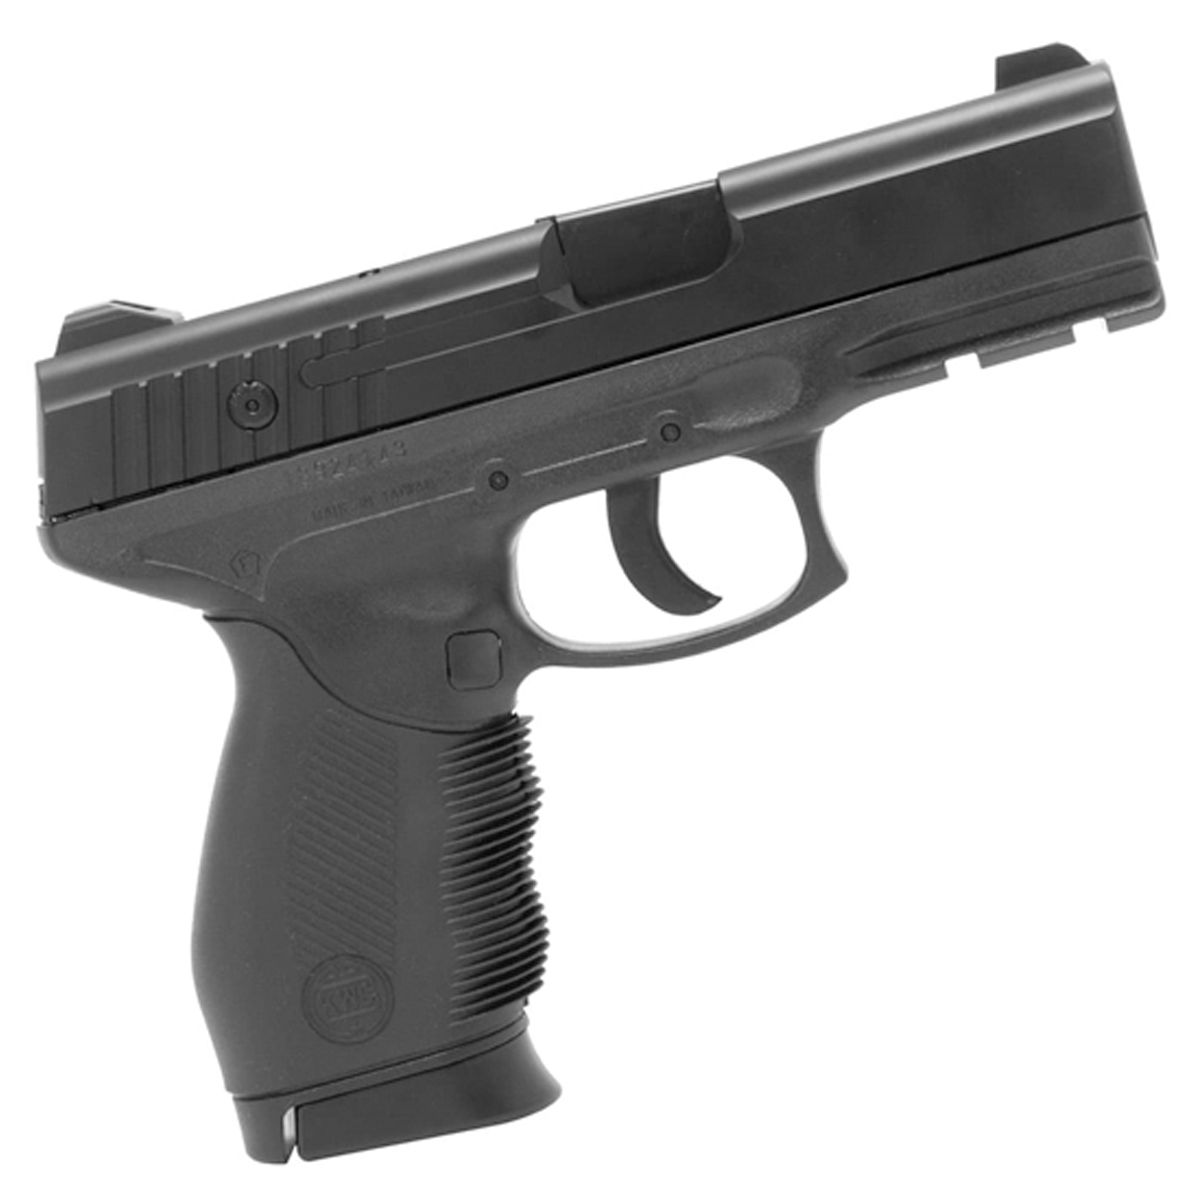 Pistola de Pressão CO2 PT24/7 KWC 4,5mm